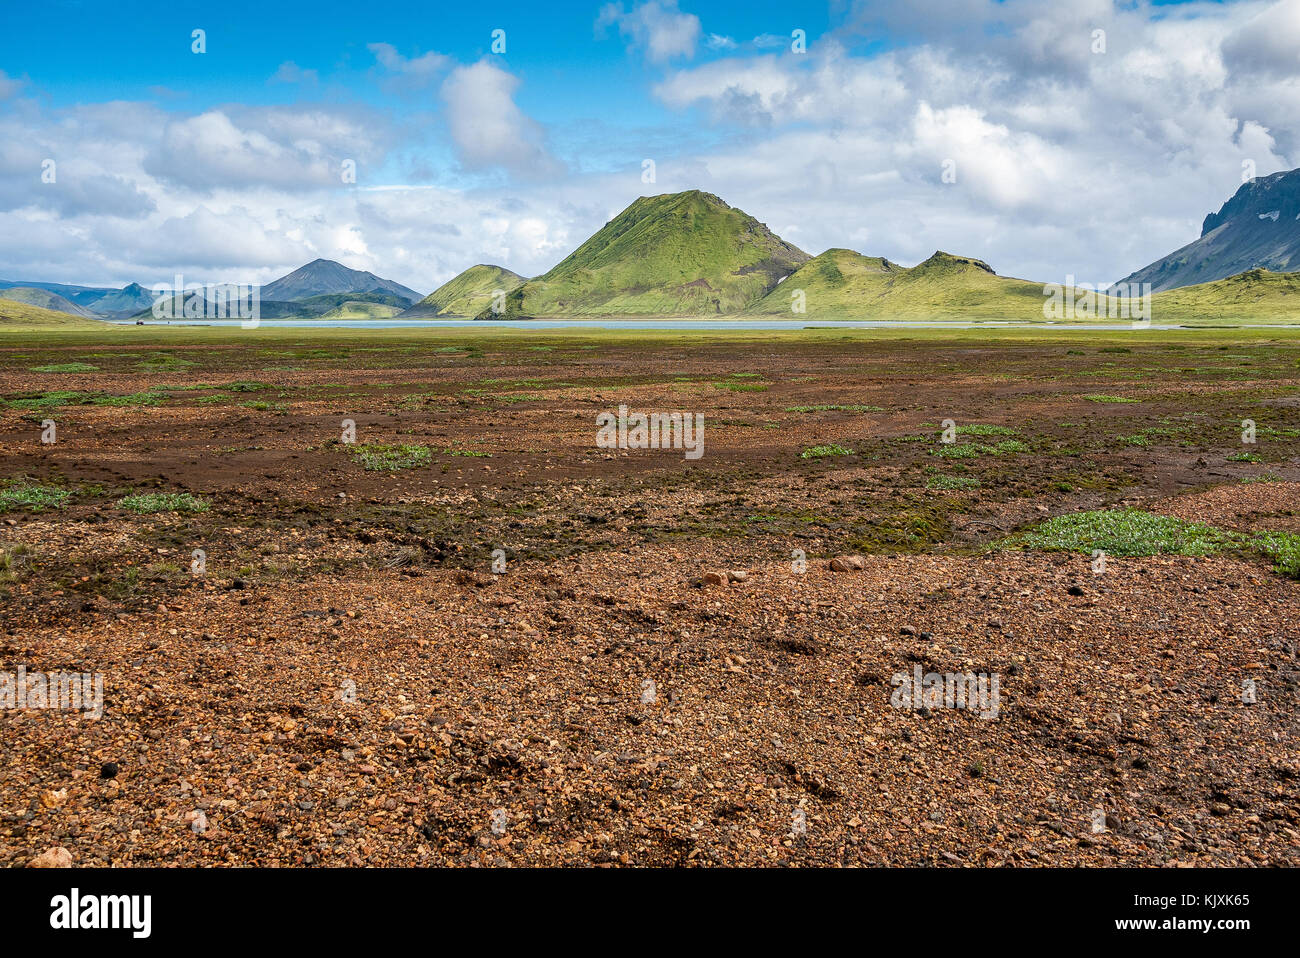 Red earth and red rock, green mountain covered with grass and lichen in the Landmannalaugar region, Iceland - Stock Image